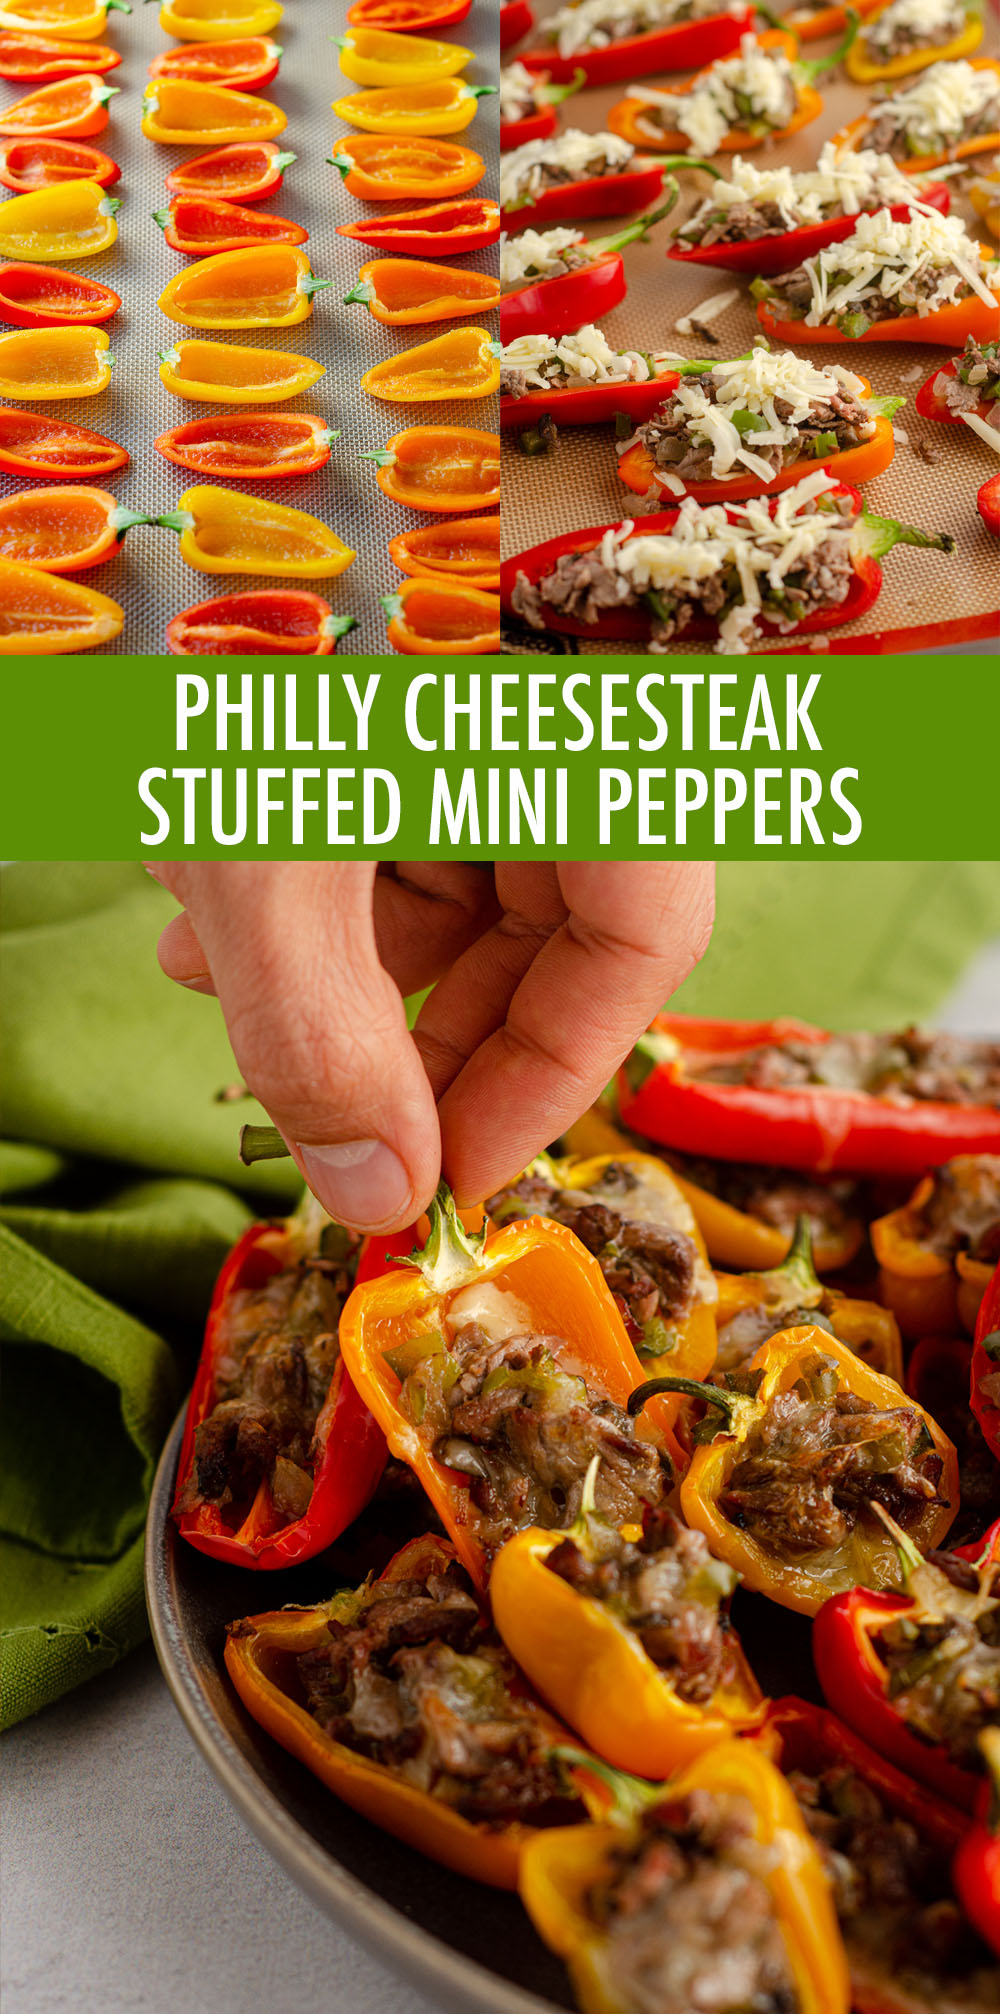 """Don't let the """"mini"""" part fool you-- these bite-size peppers are packed with tons of flavor! Recipe includes instructions for four large Philly cheesesteak stuffed peppers."""